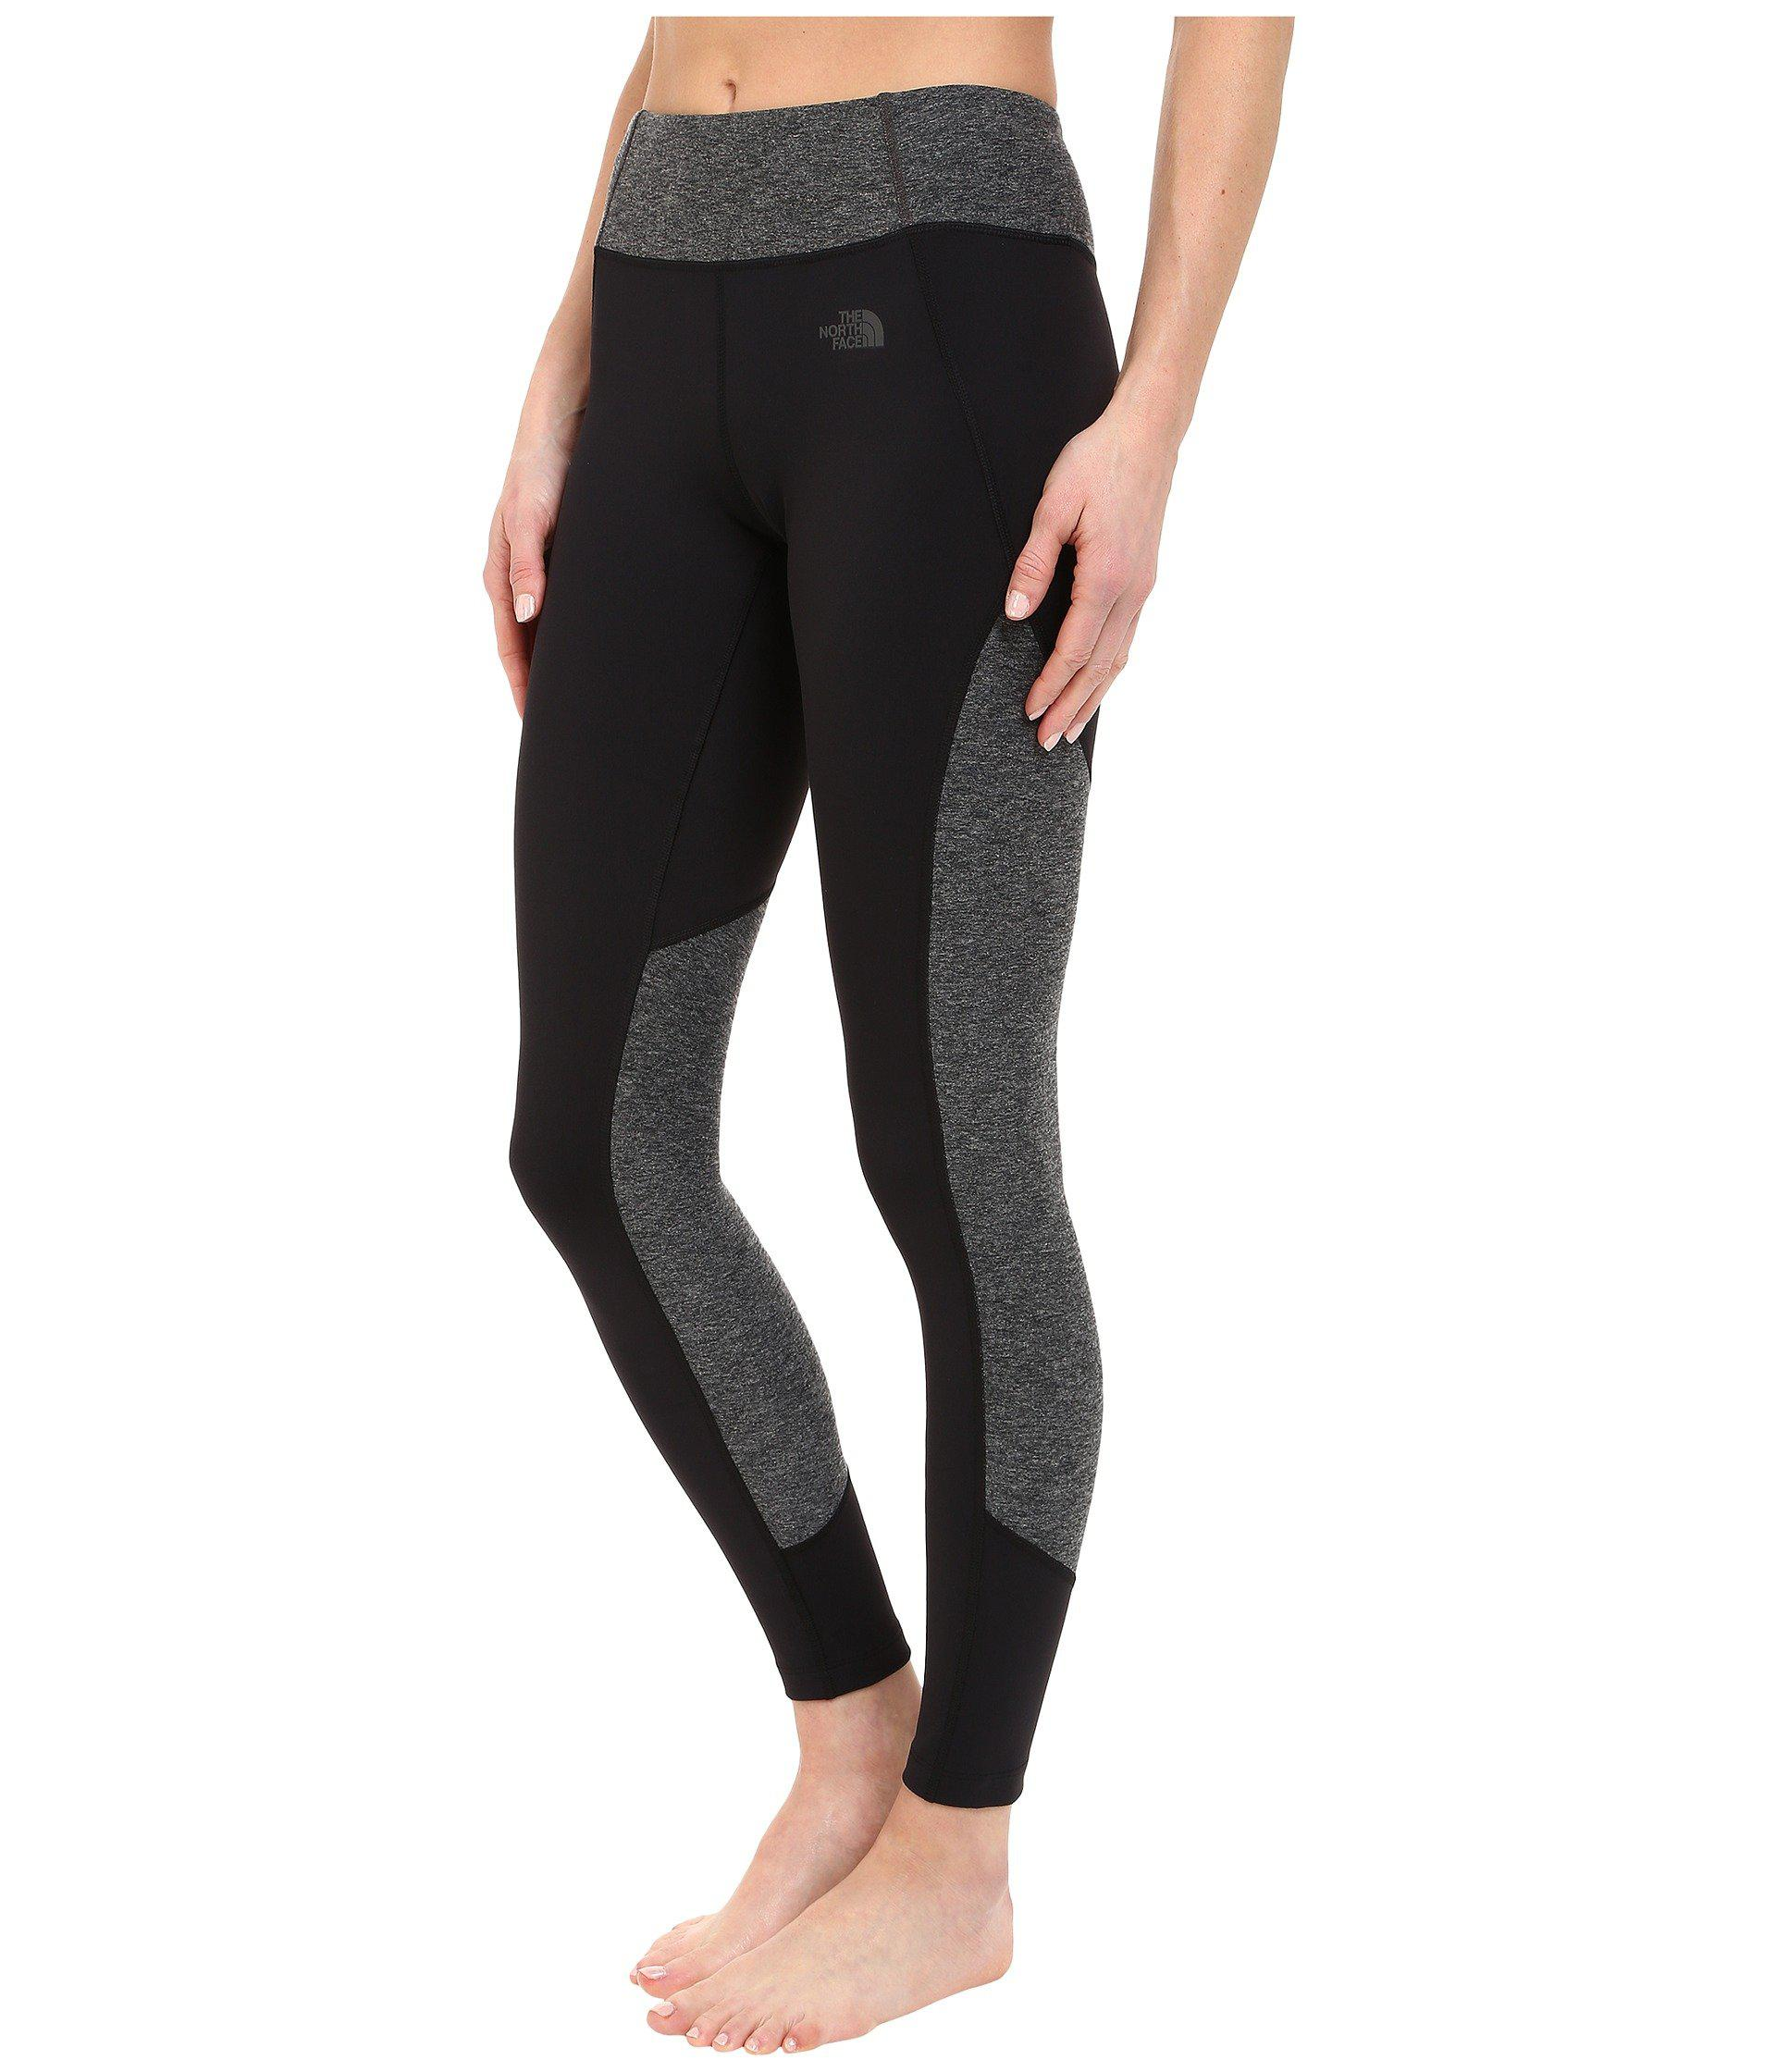 bb5095ef1297c2 The North Face Motivation Color Block Printed Leggings in Black - Lyst